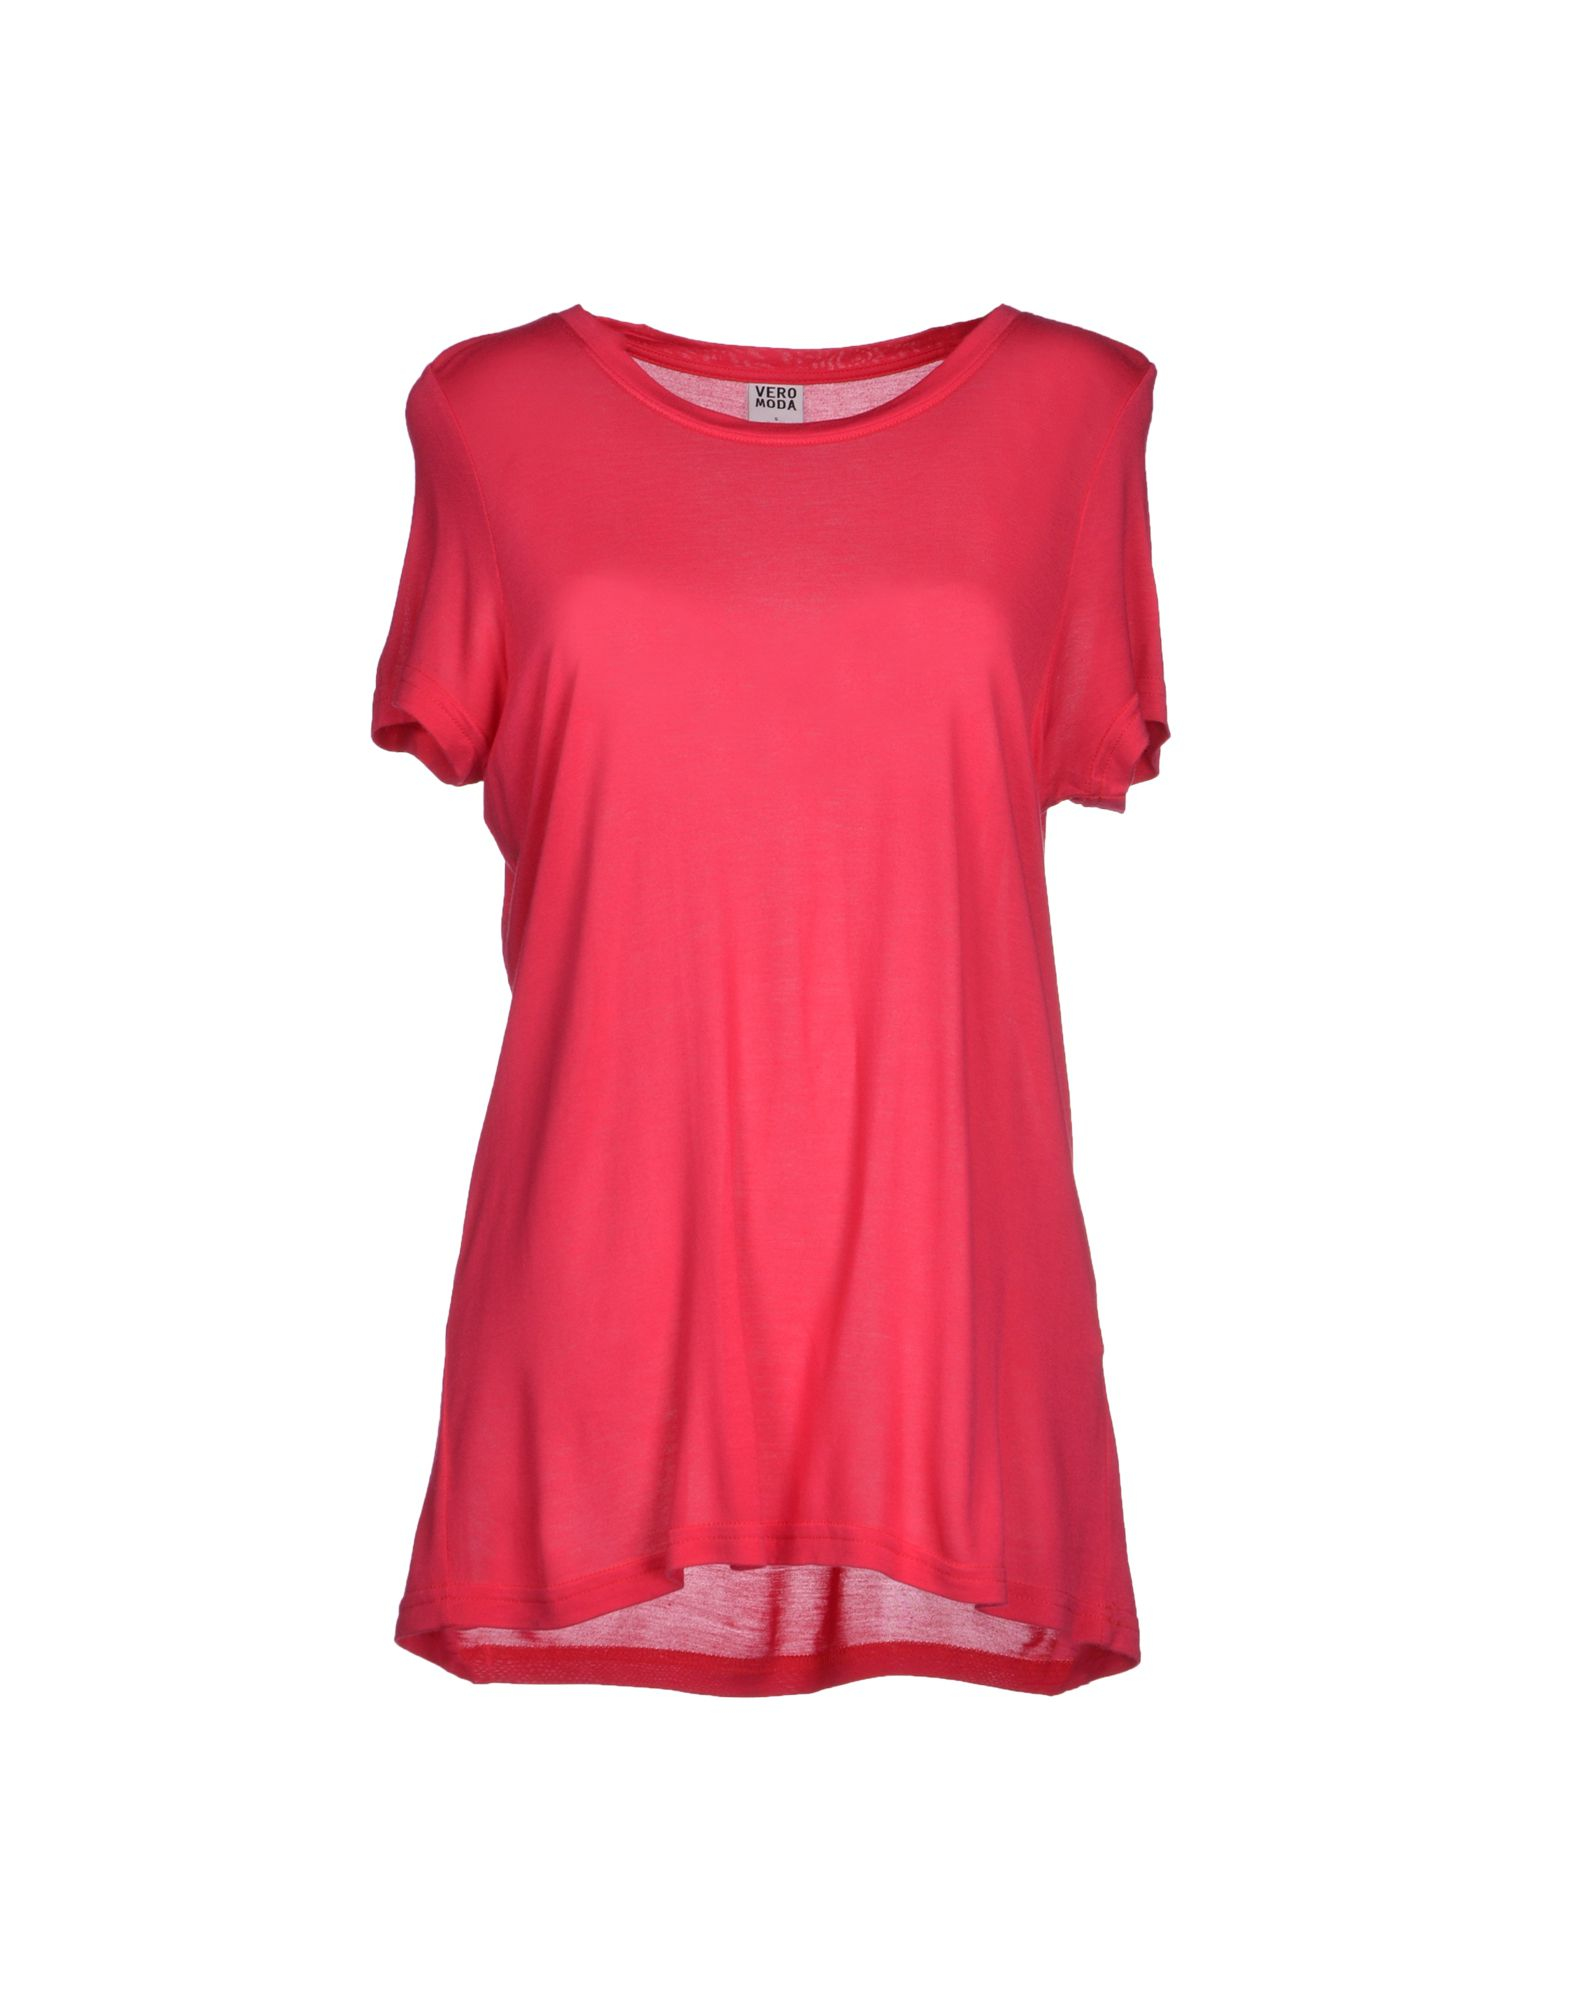 vero moda t shirt in red fuchsia save 36 lyst. Black Bedroom Furniture Sets. Home Design Ideas